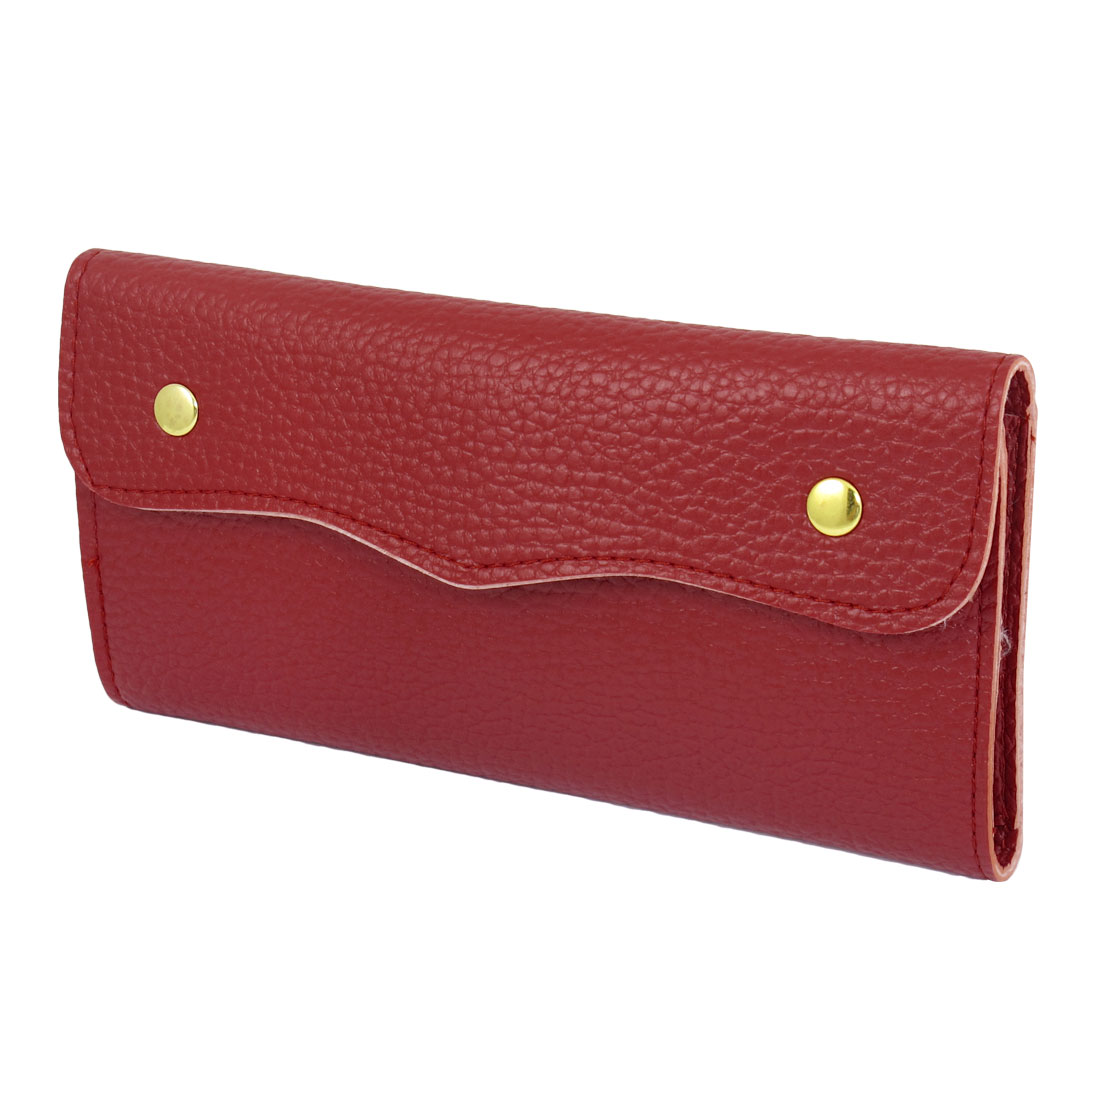 Lychee Texture 10 Card Slots Press Stud Closure Wallet Red for Women